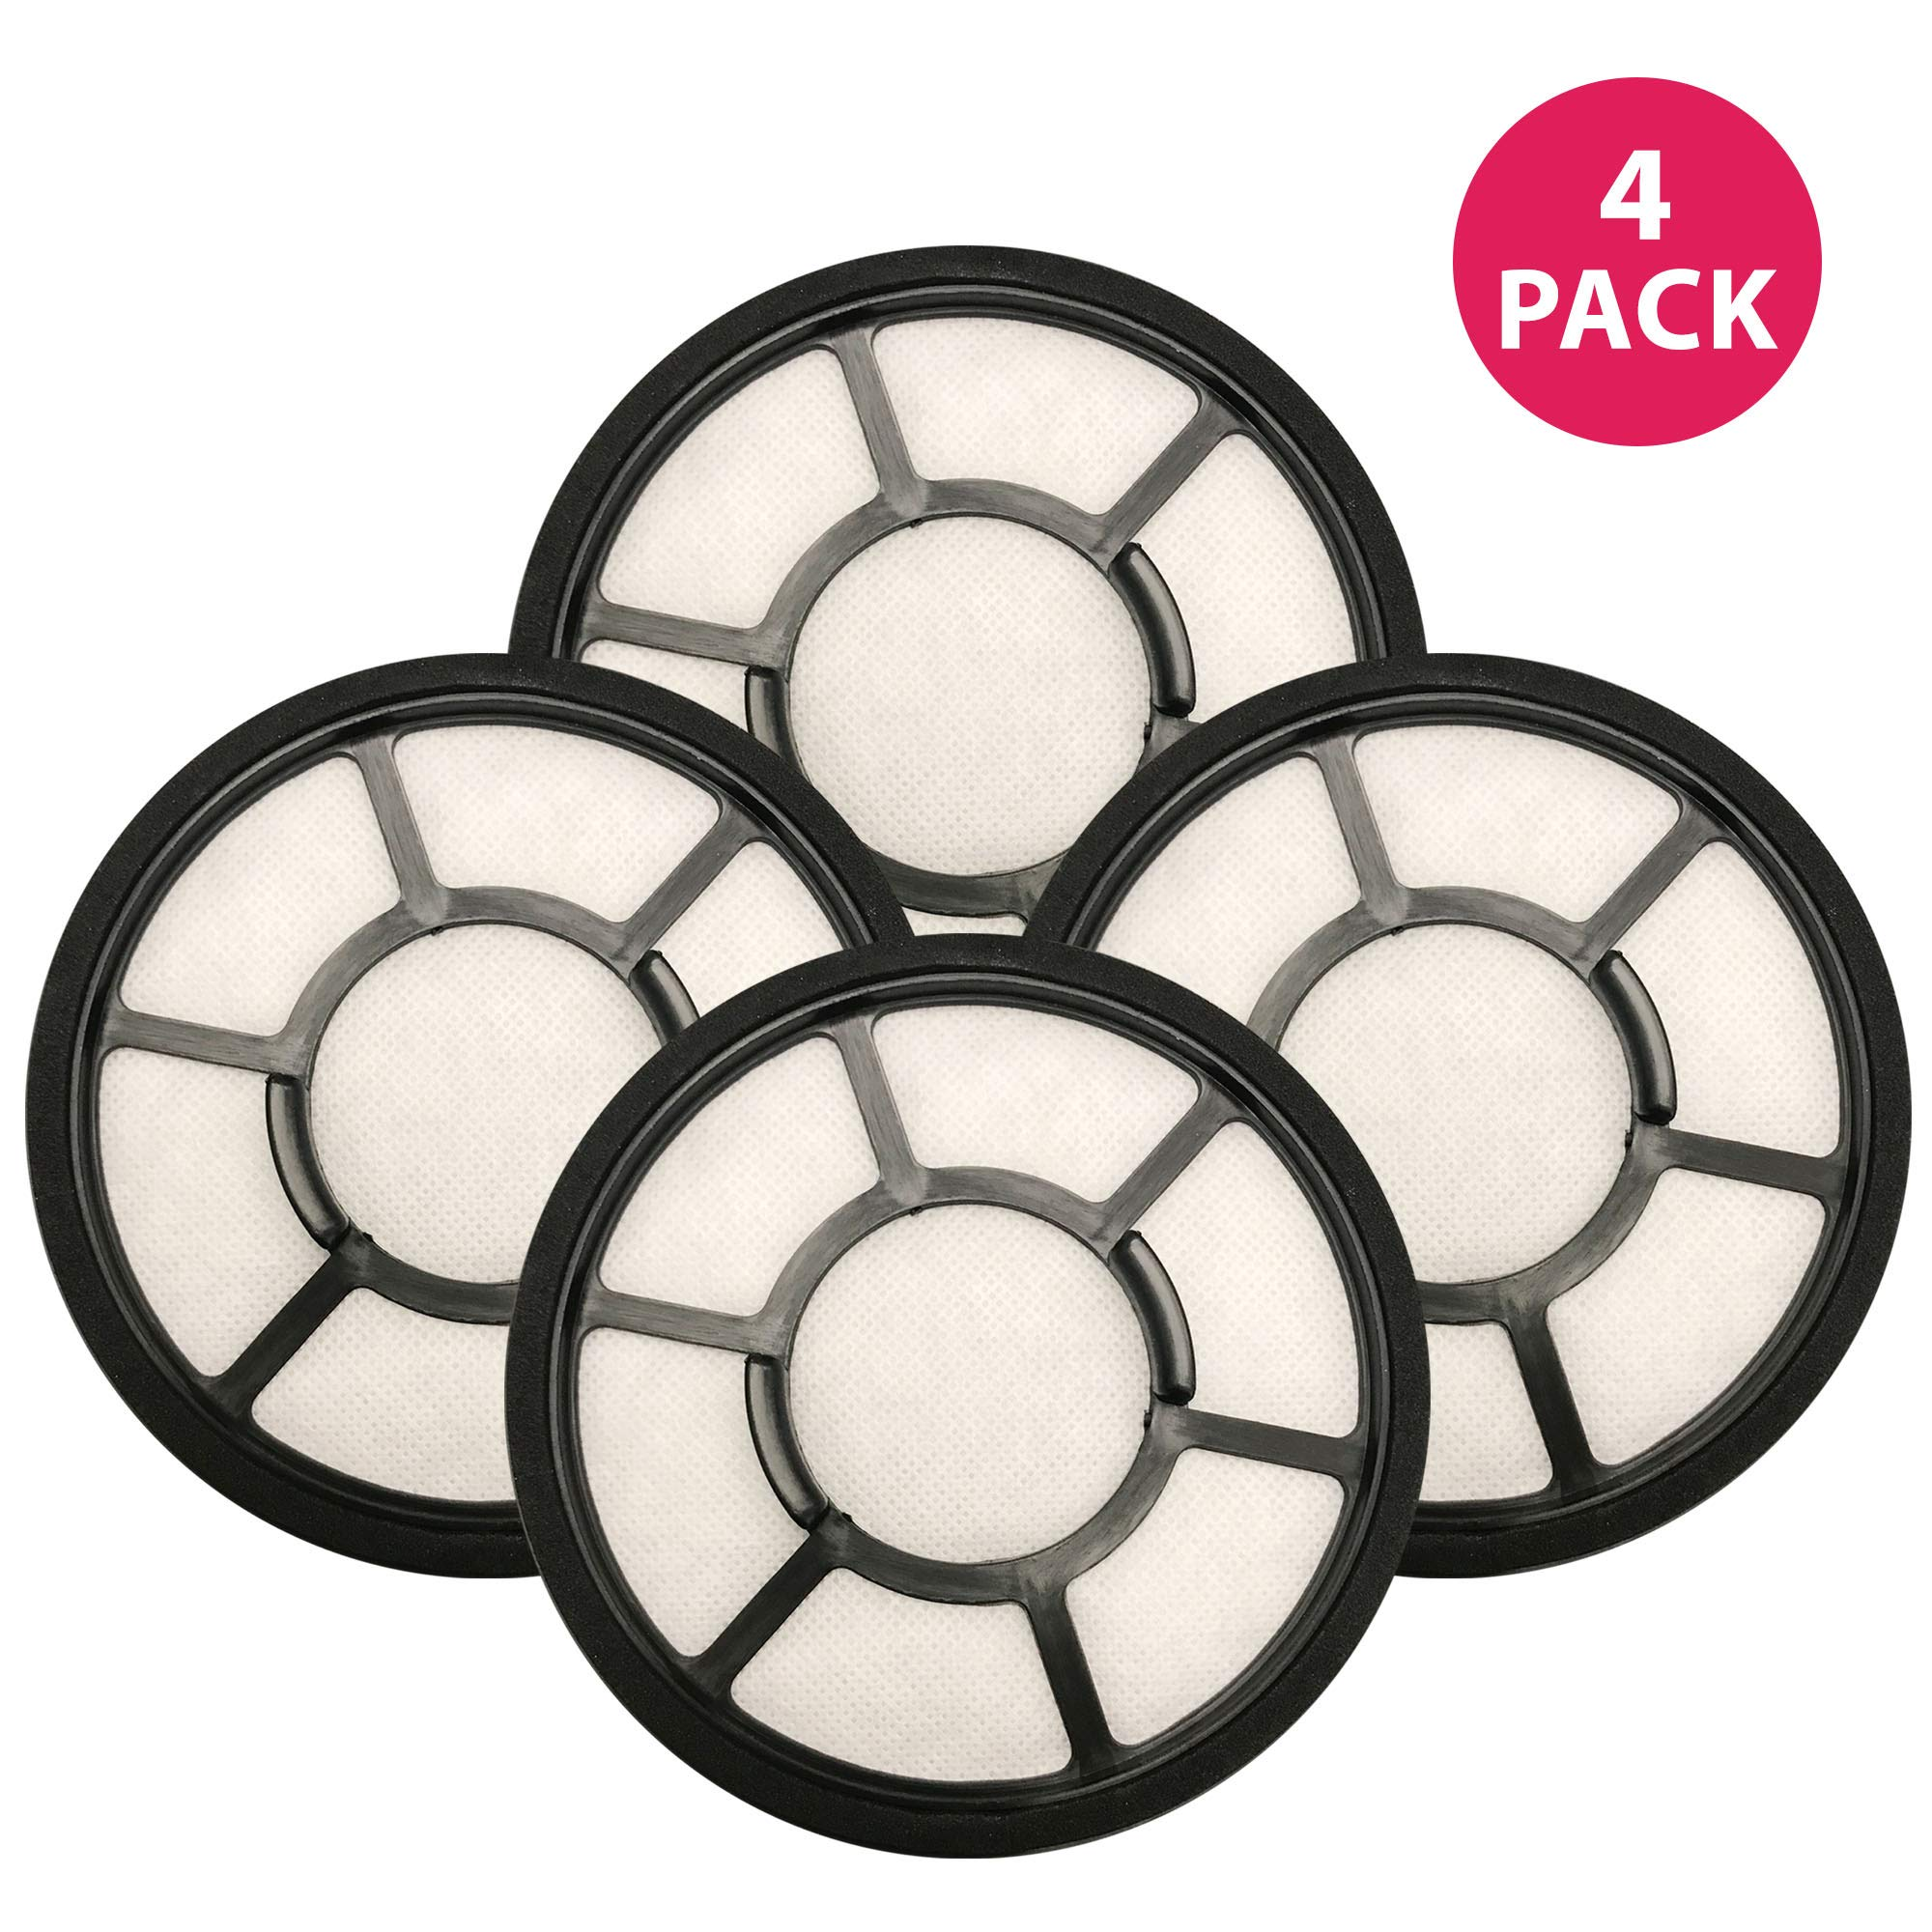 Think Crucial Replacement Air Filters Compatible With Black & Decker 5.5 x 5.5 x 1 Circular Pre Filter Part , Fits Vacuum Cleaner Model Parts BDASV102 Airswivel Vacuum Cleaners (4 Pack)